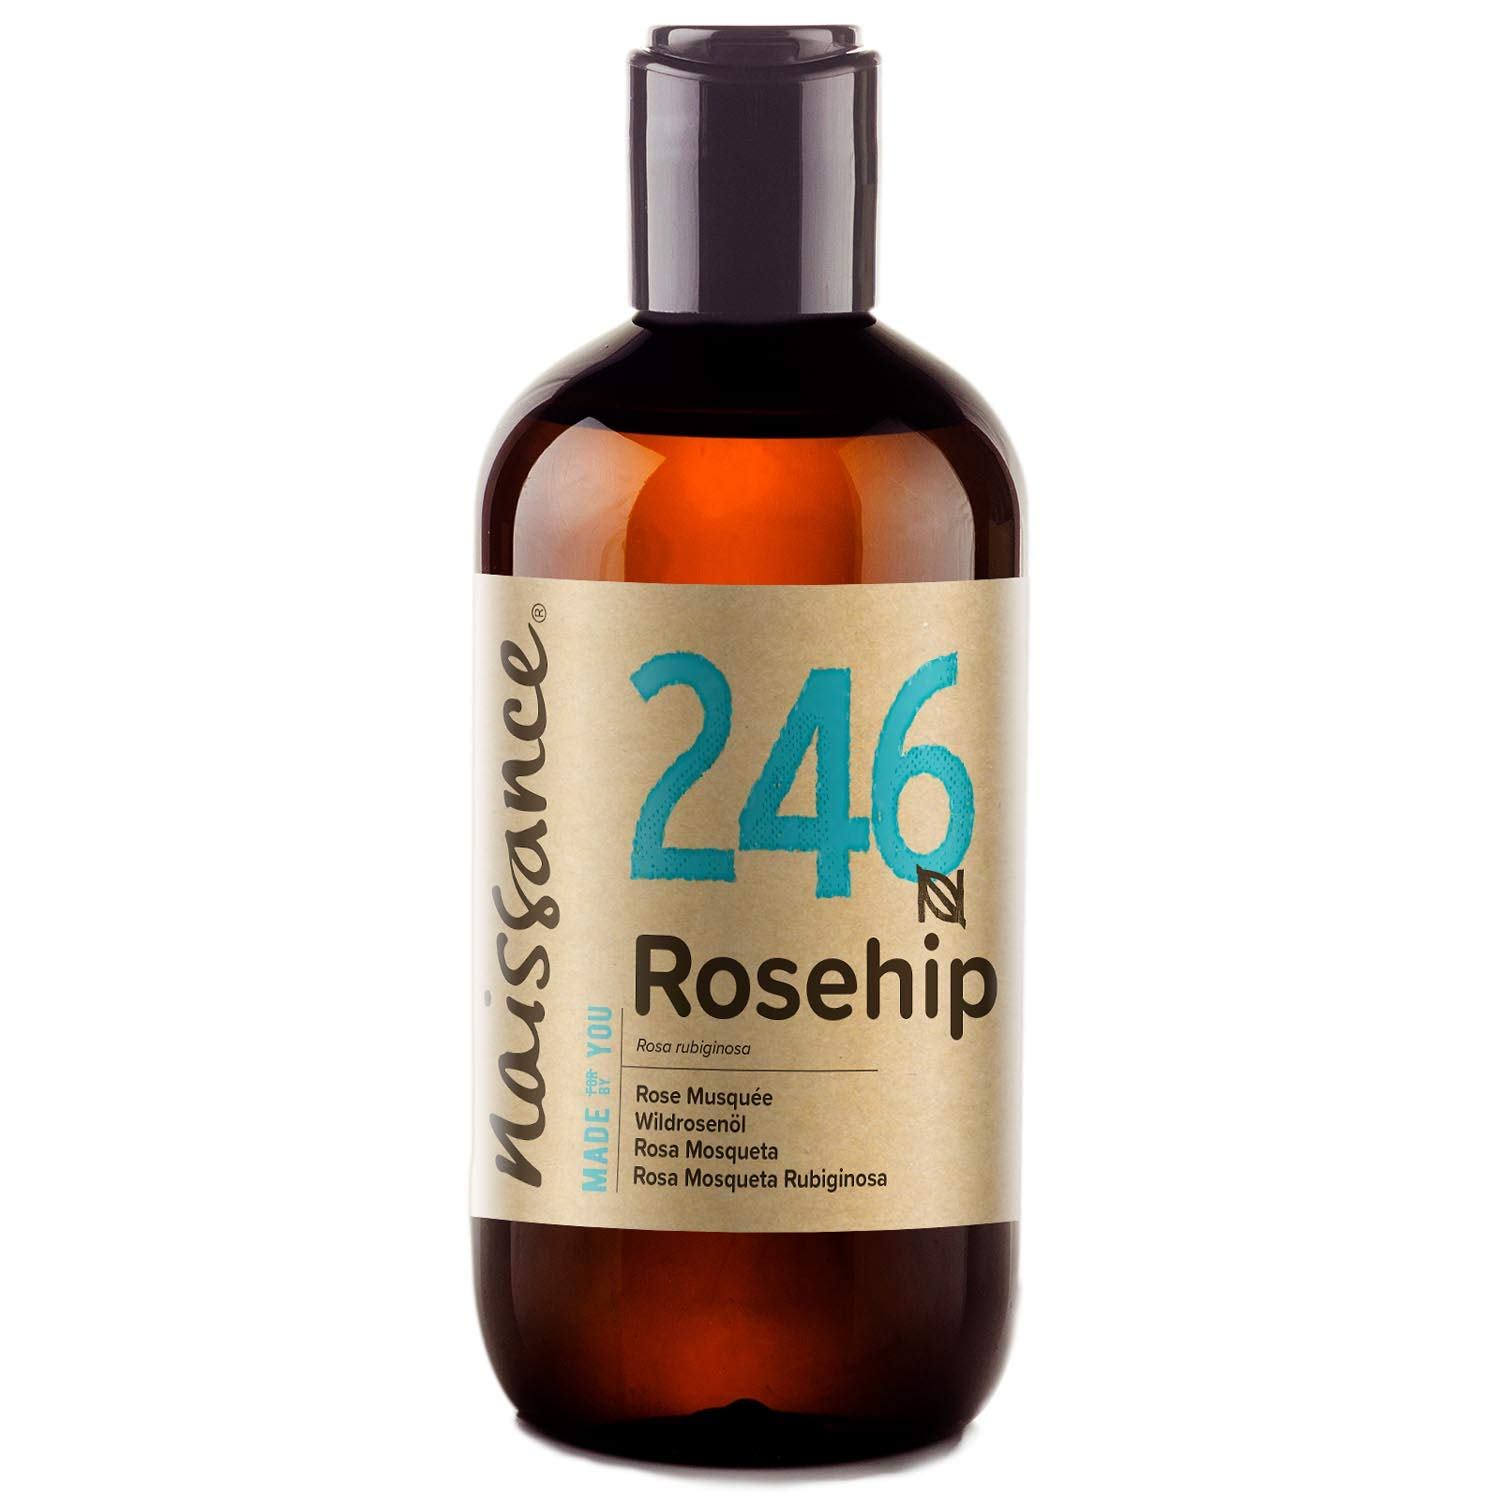 Rosehip Seed Oil from Naissance